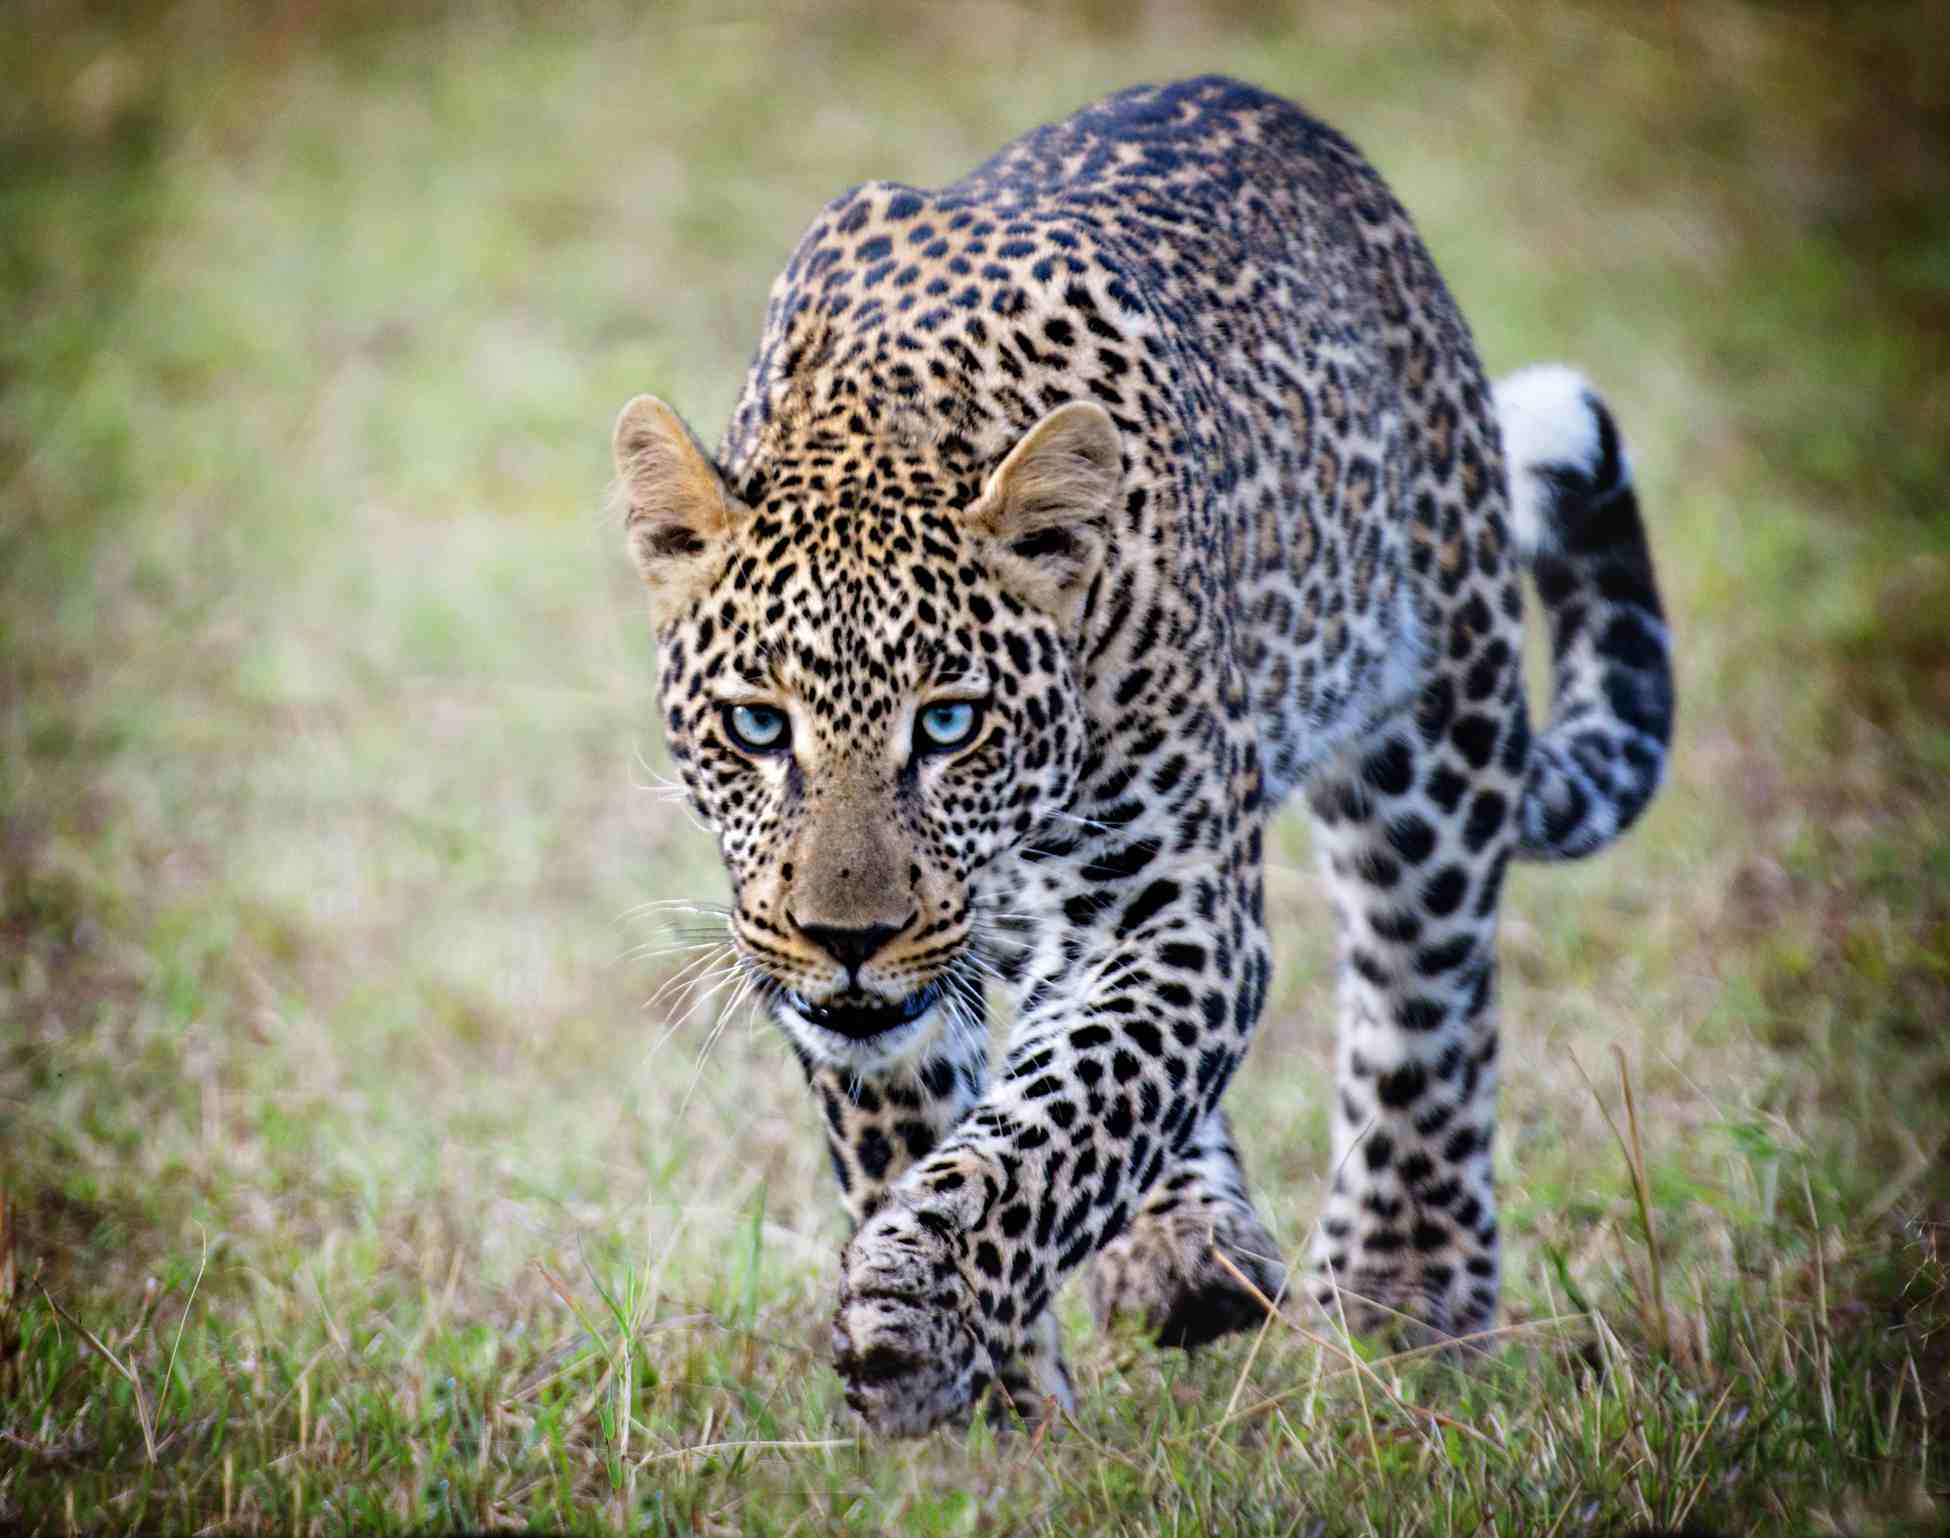 Spotted leopard walking in the grass.